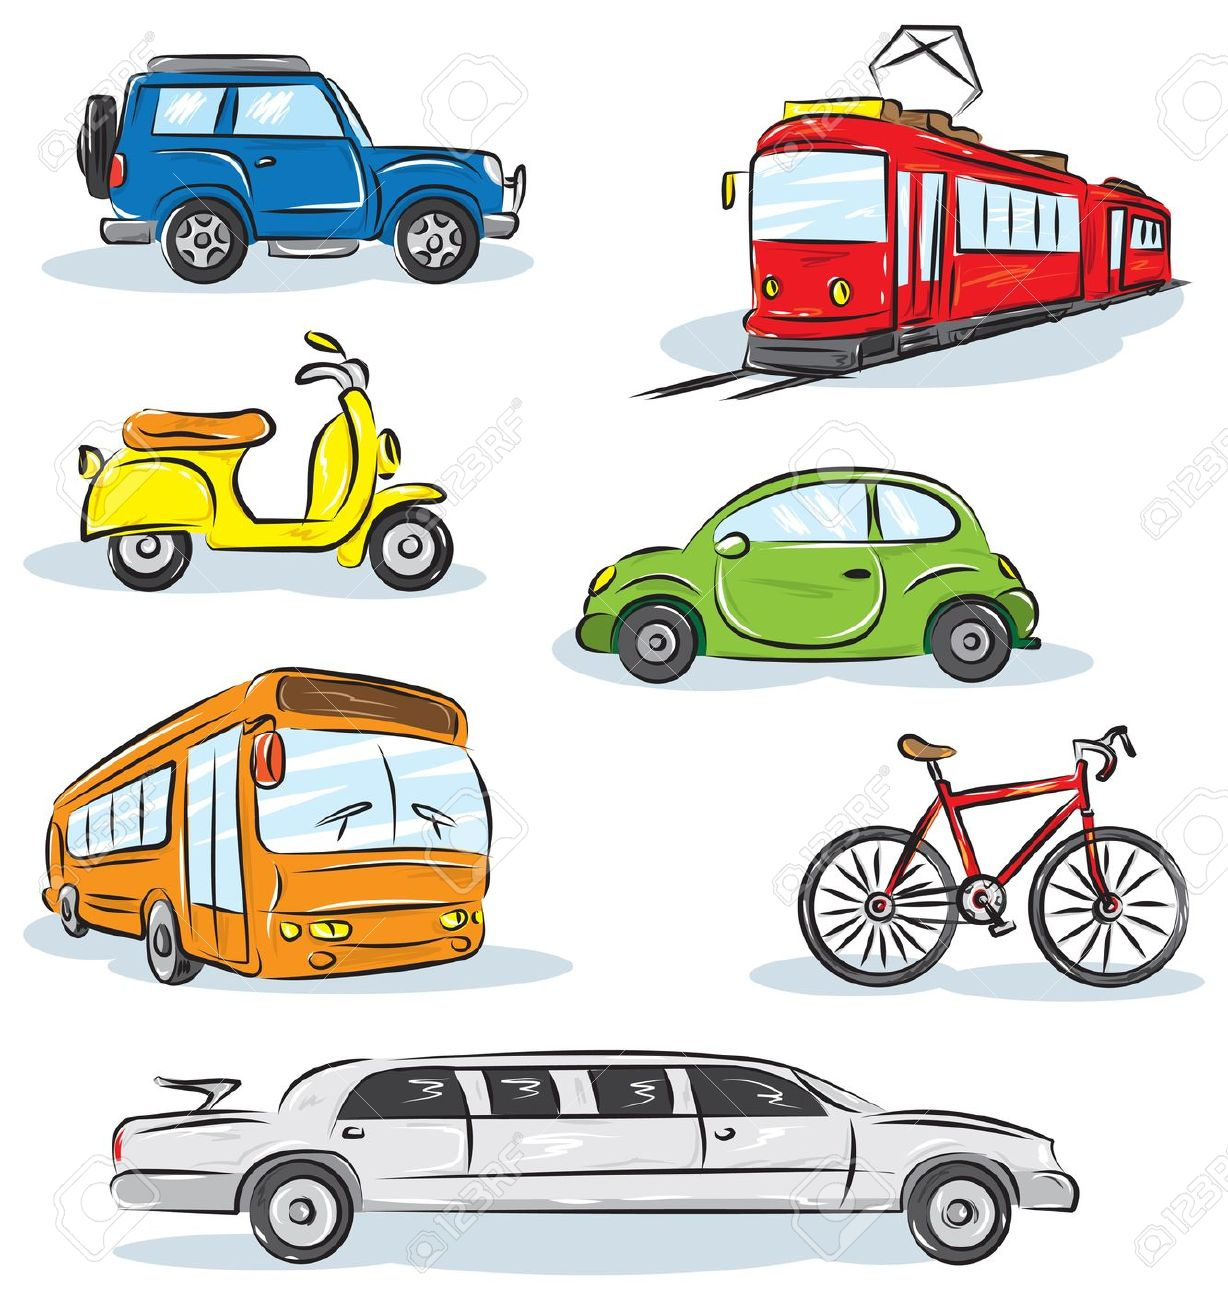 Land vehicles clipart.